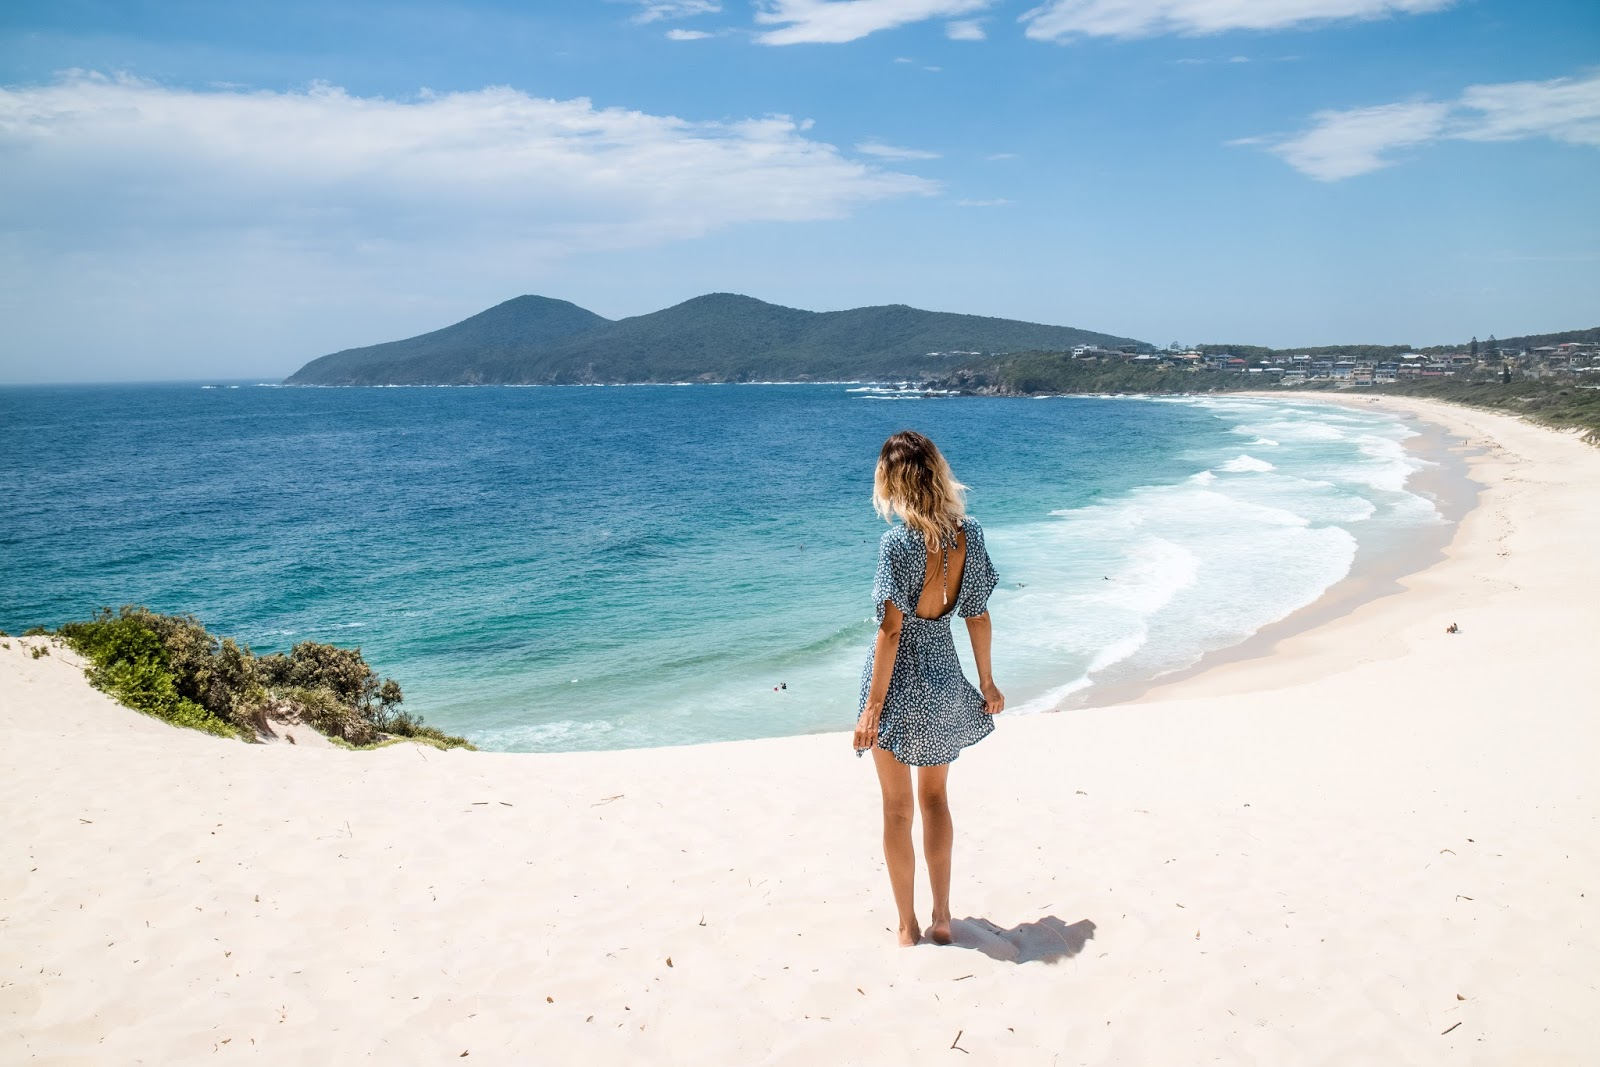 Travel Blogger, Alison Hutchinson, at one mile beach in Forster Australia